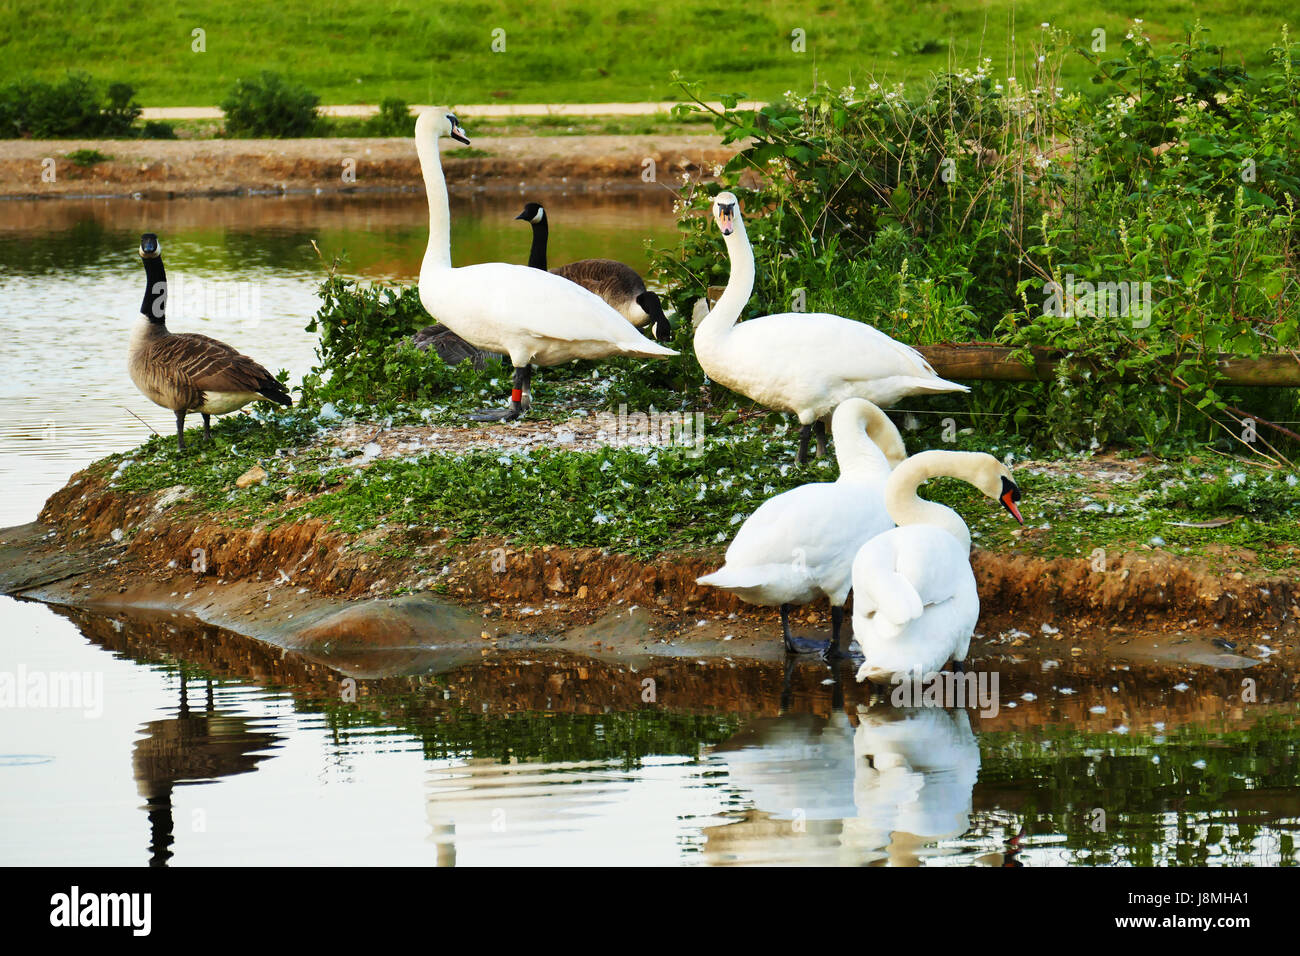 Swans and geese on an island in Jubilee pond Wanstead Flats, Forest Gate, London E7 Stock Photo